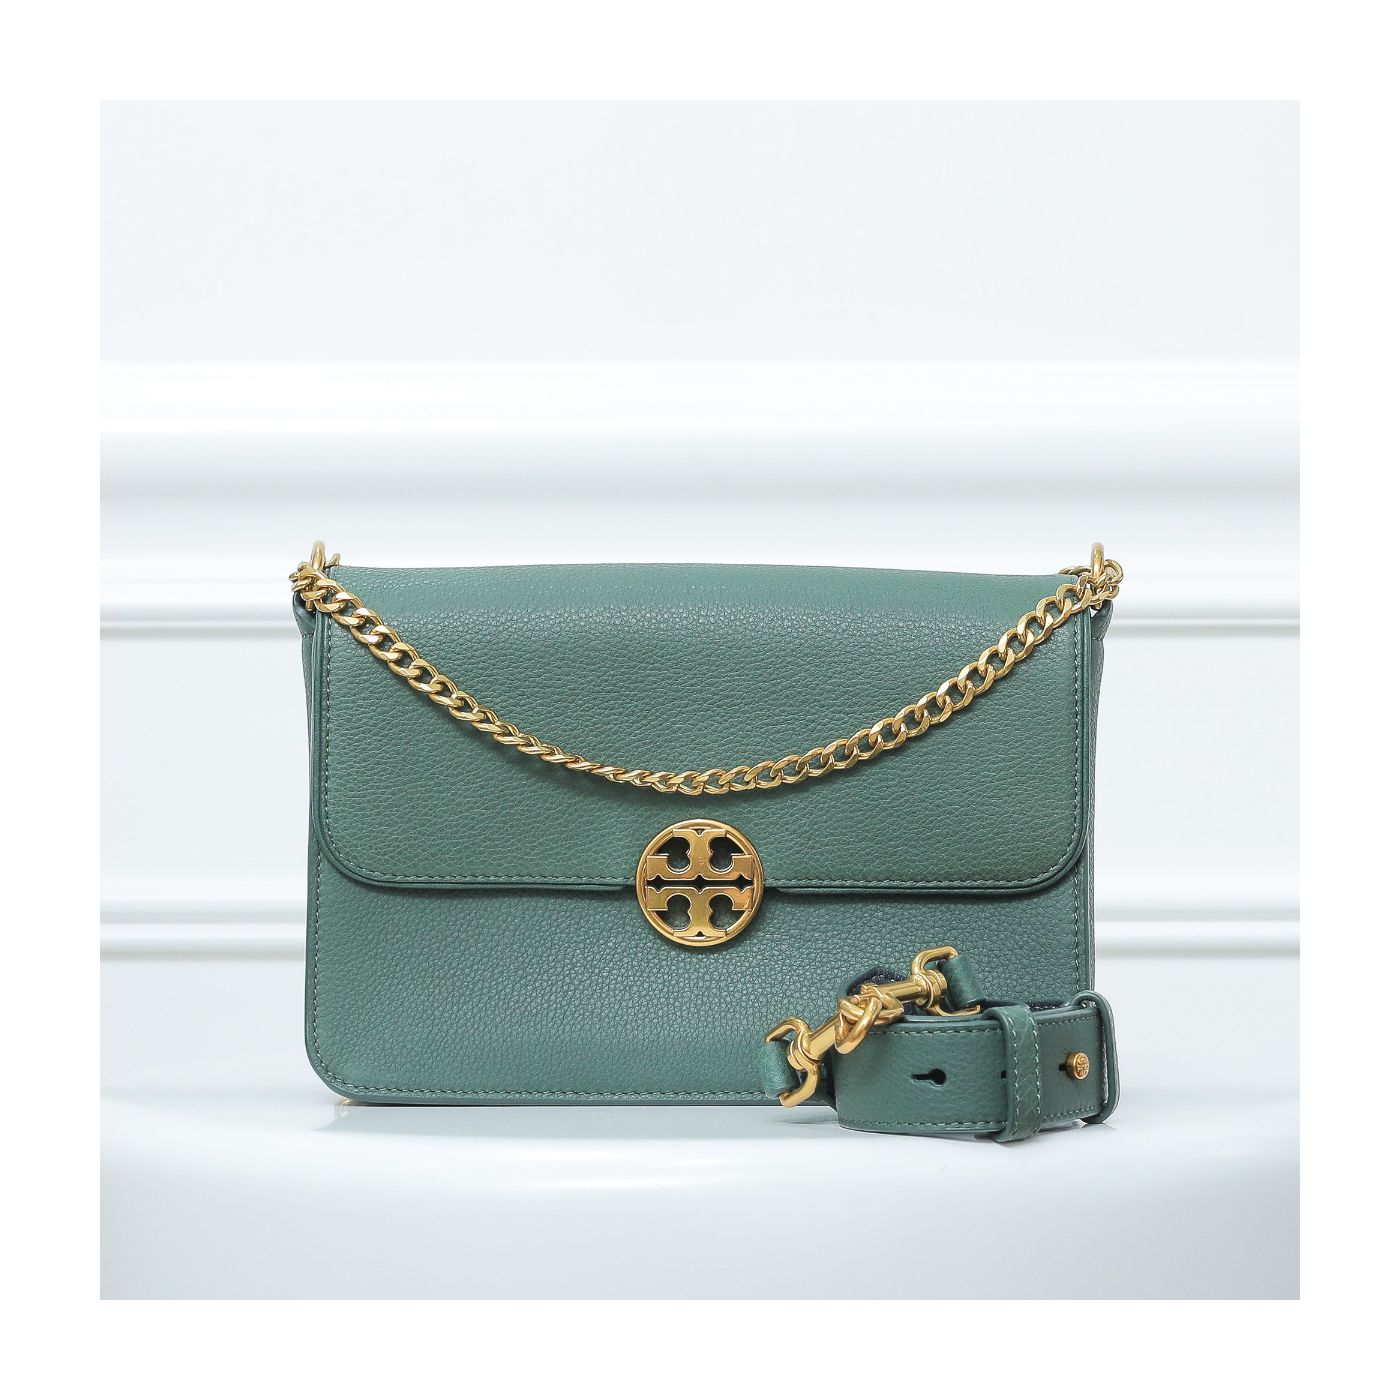 Tory Burch Forest Green Chelsea Convertible Bag